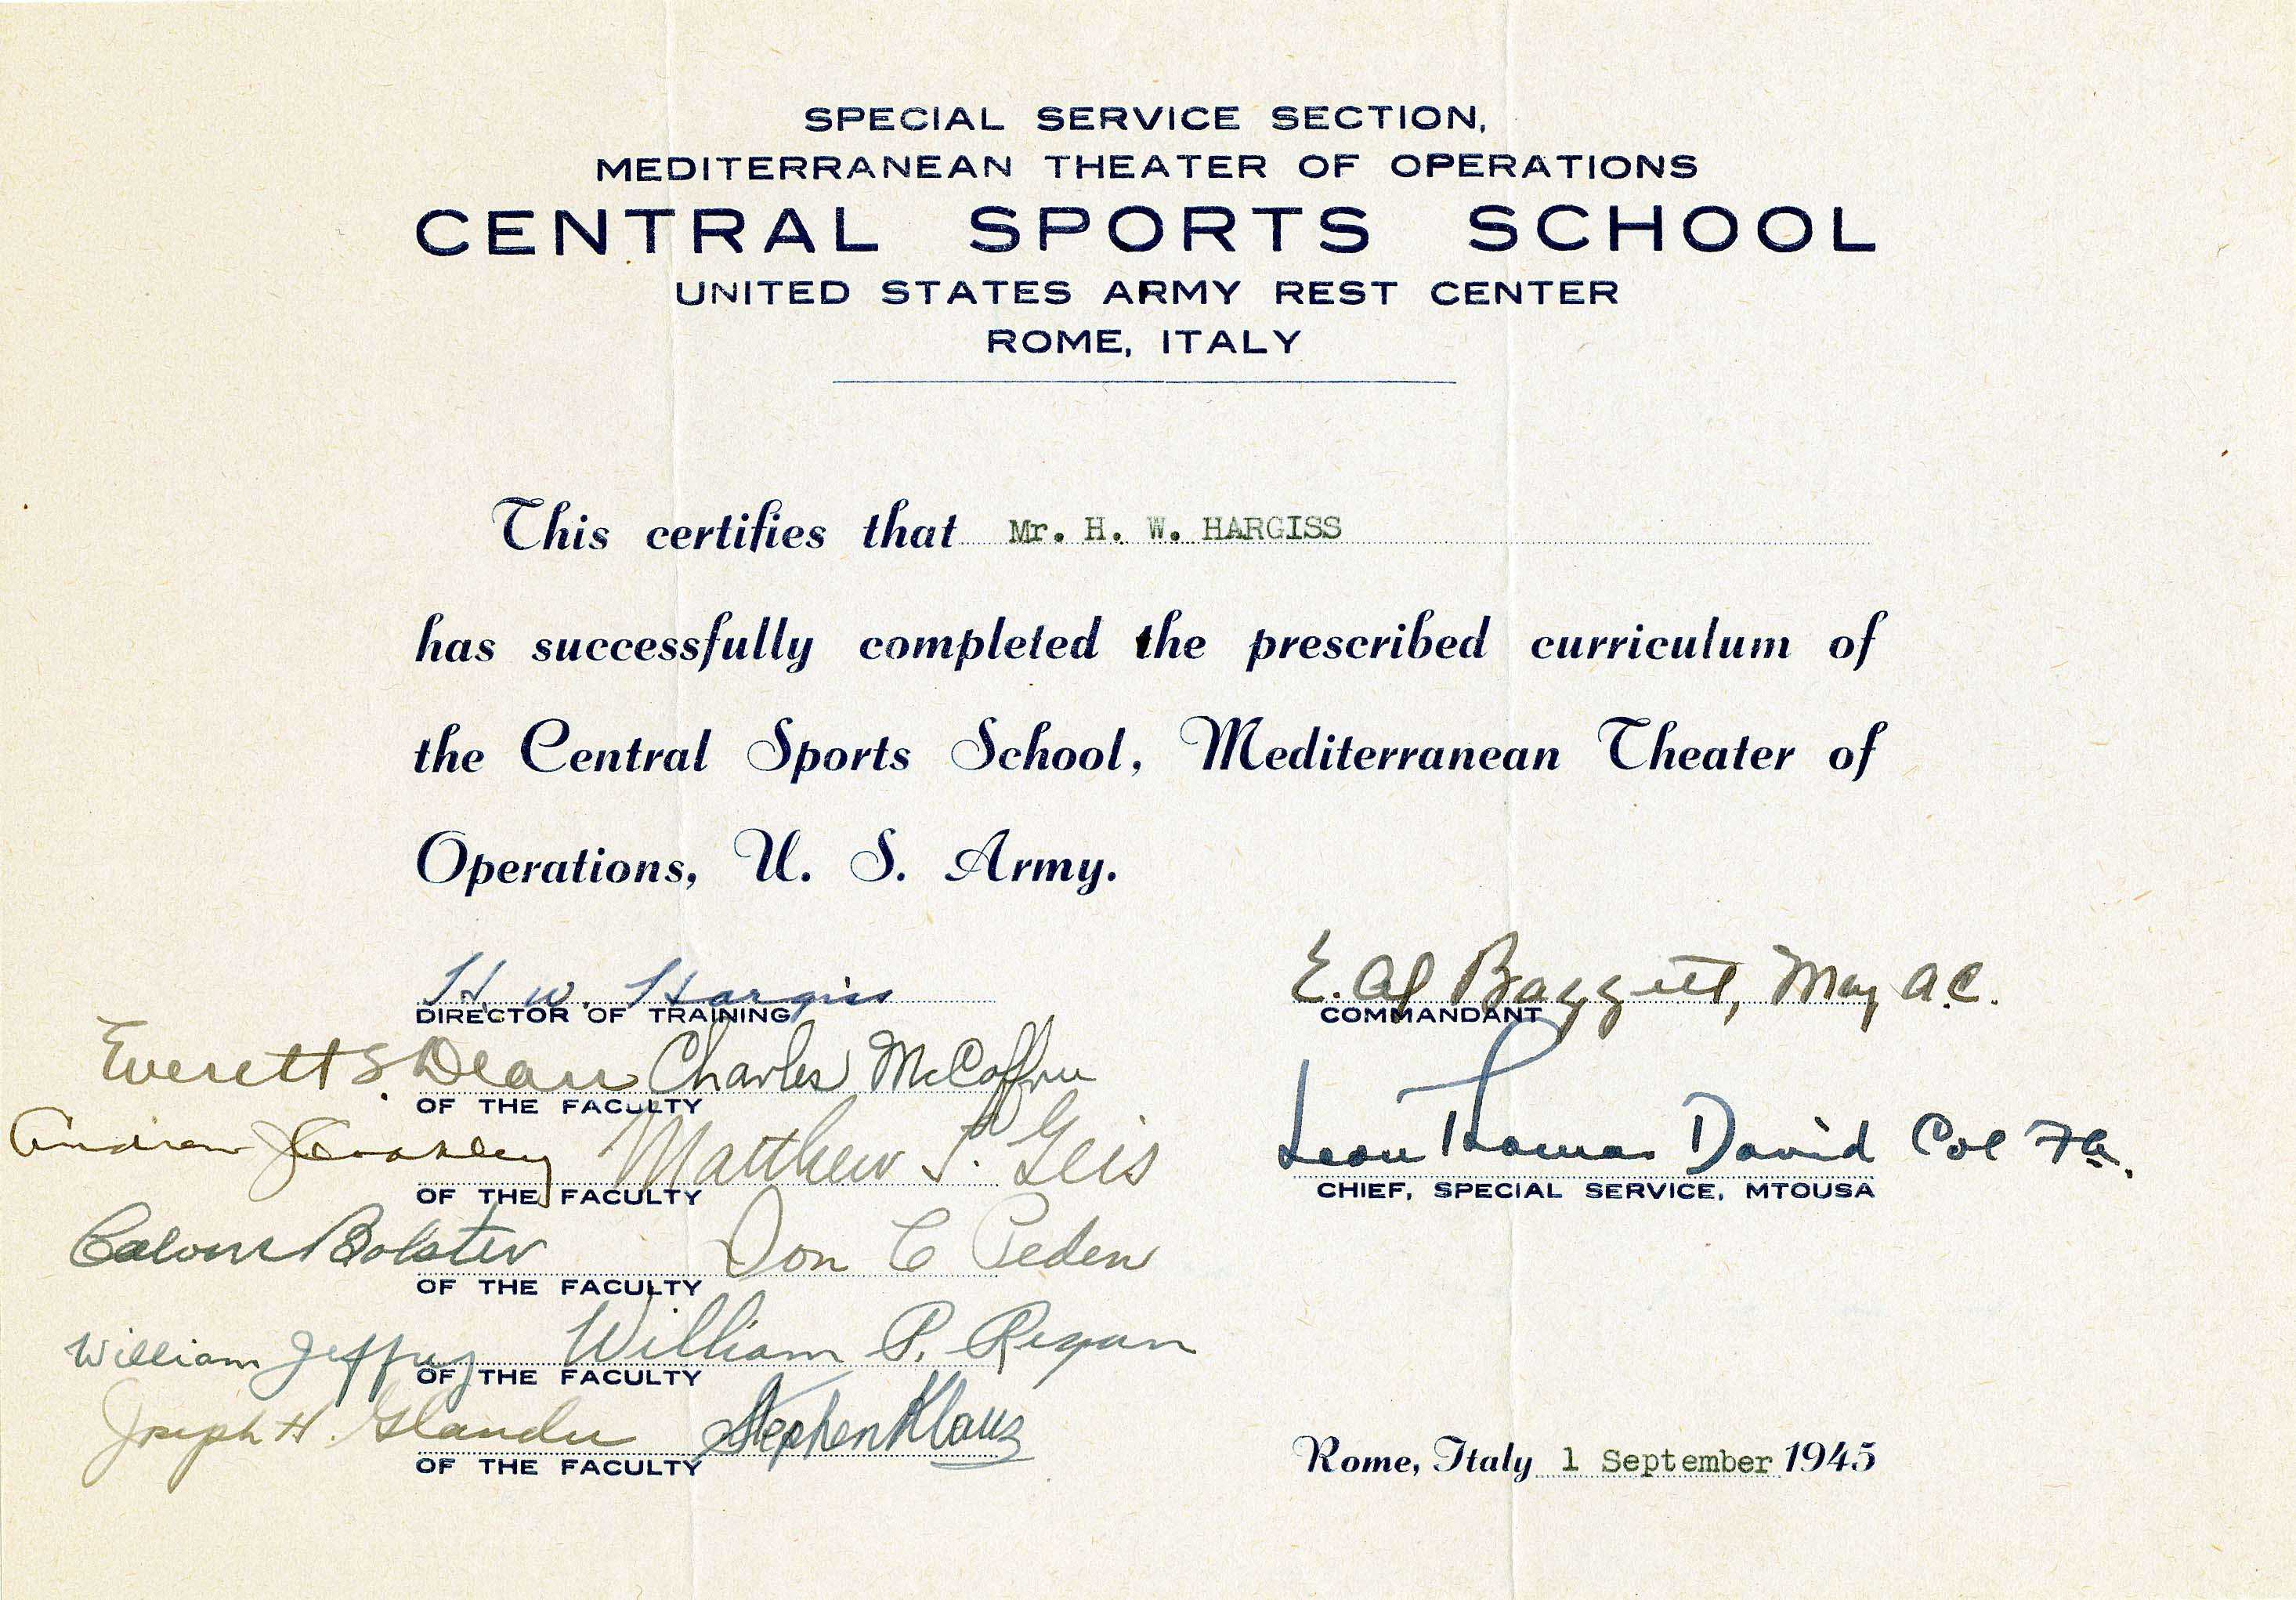 Us army letter of appreciation to bill hargiss 1945 us army central sports school certificate to bill hargiss 1945 xflitez Gallery